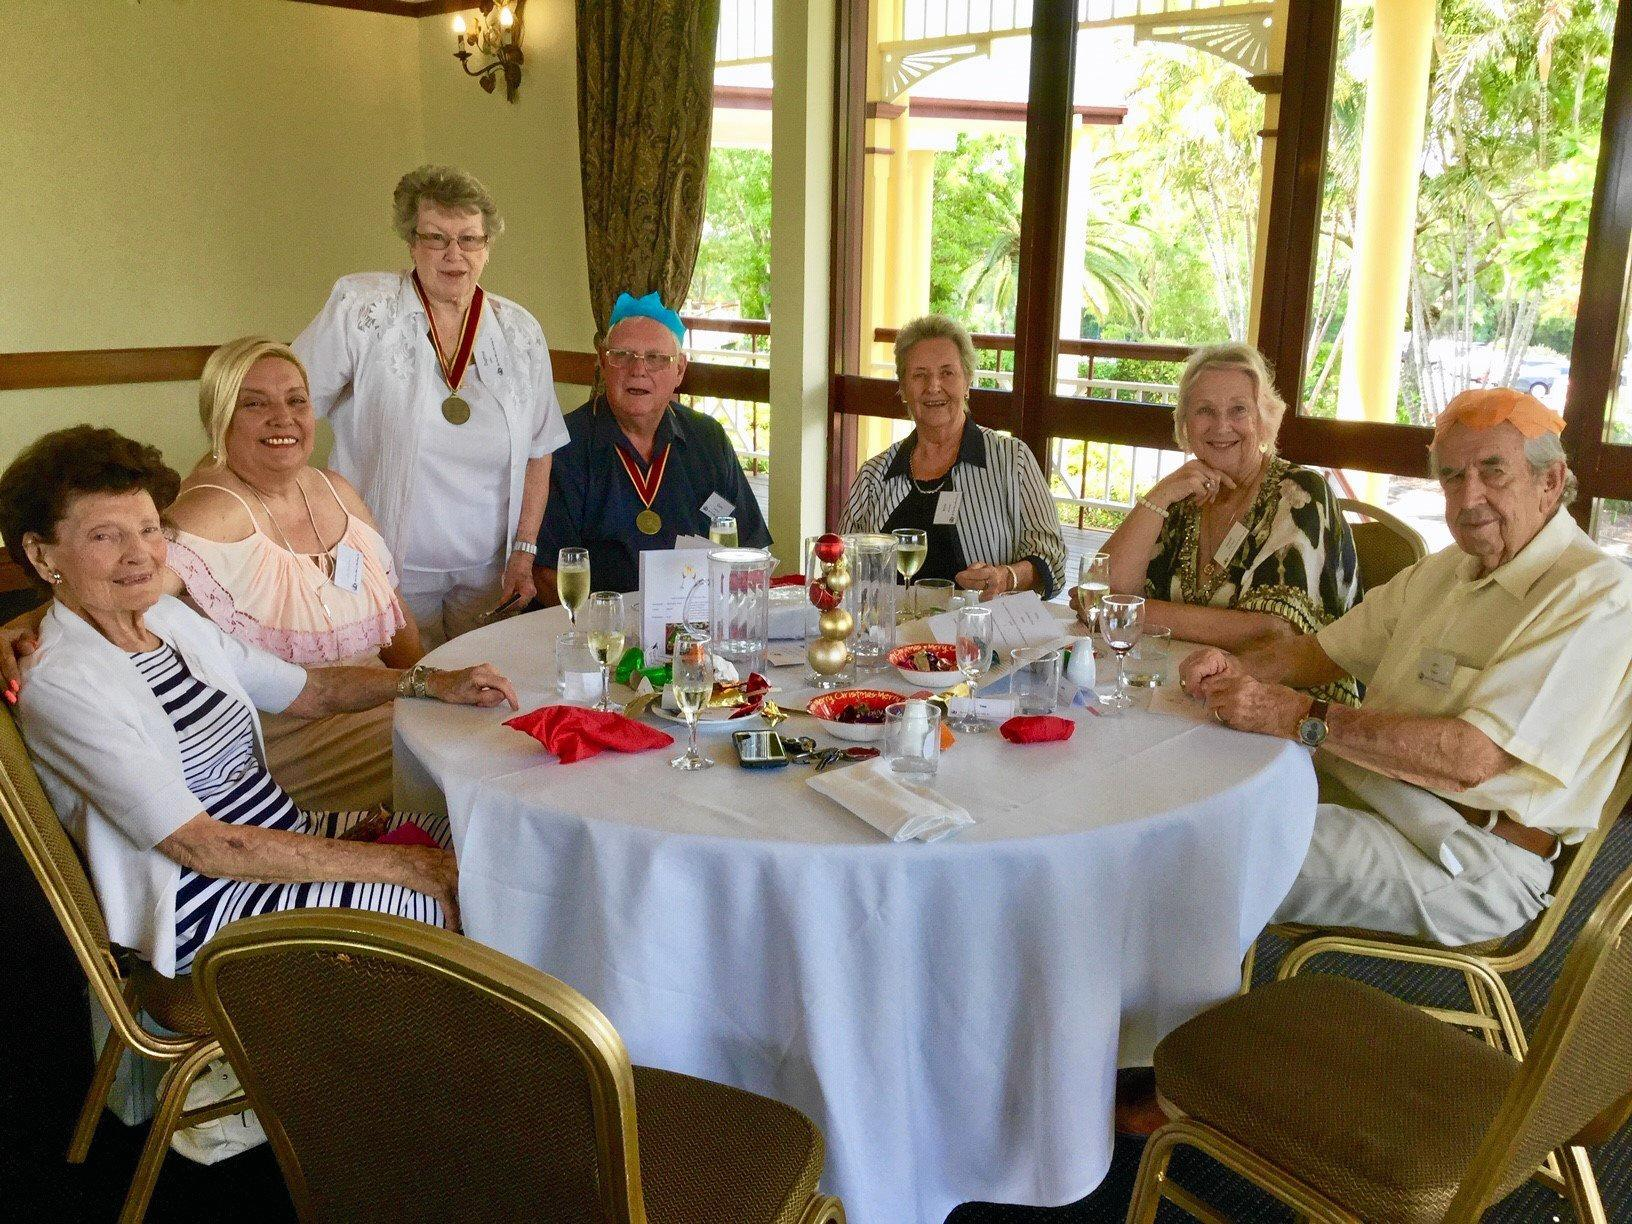 Gold Coast Wine & Food Society members enjoyed an excellent Christmas luncheon at Palmer Colonial.